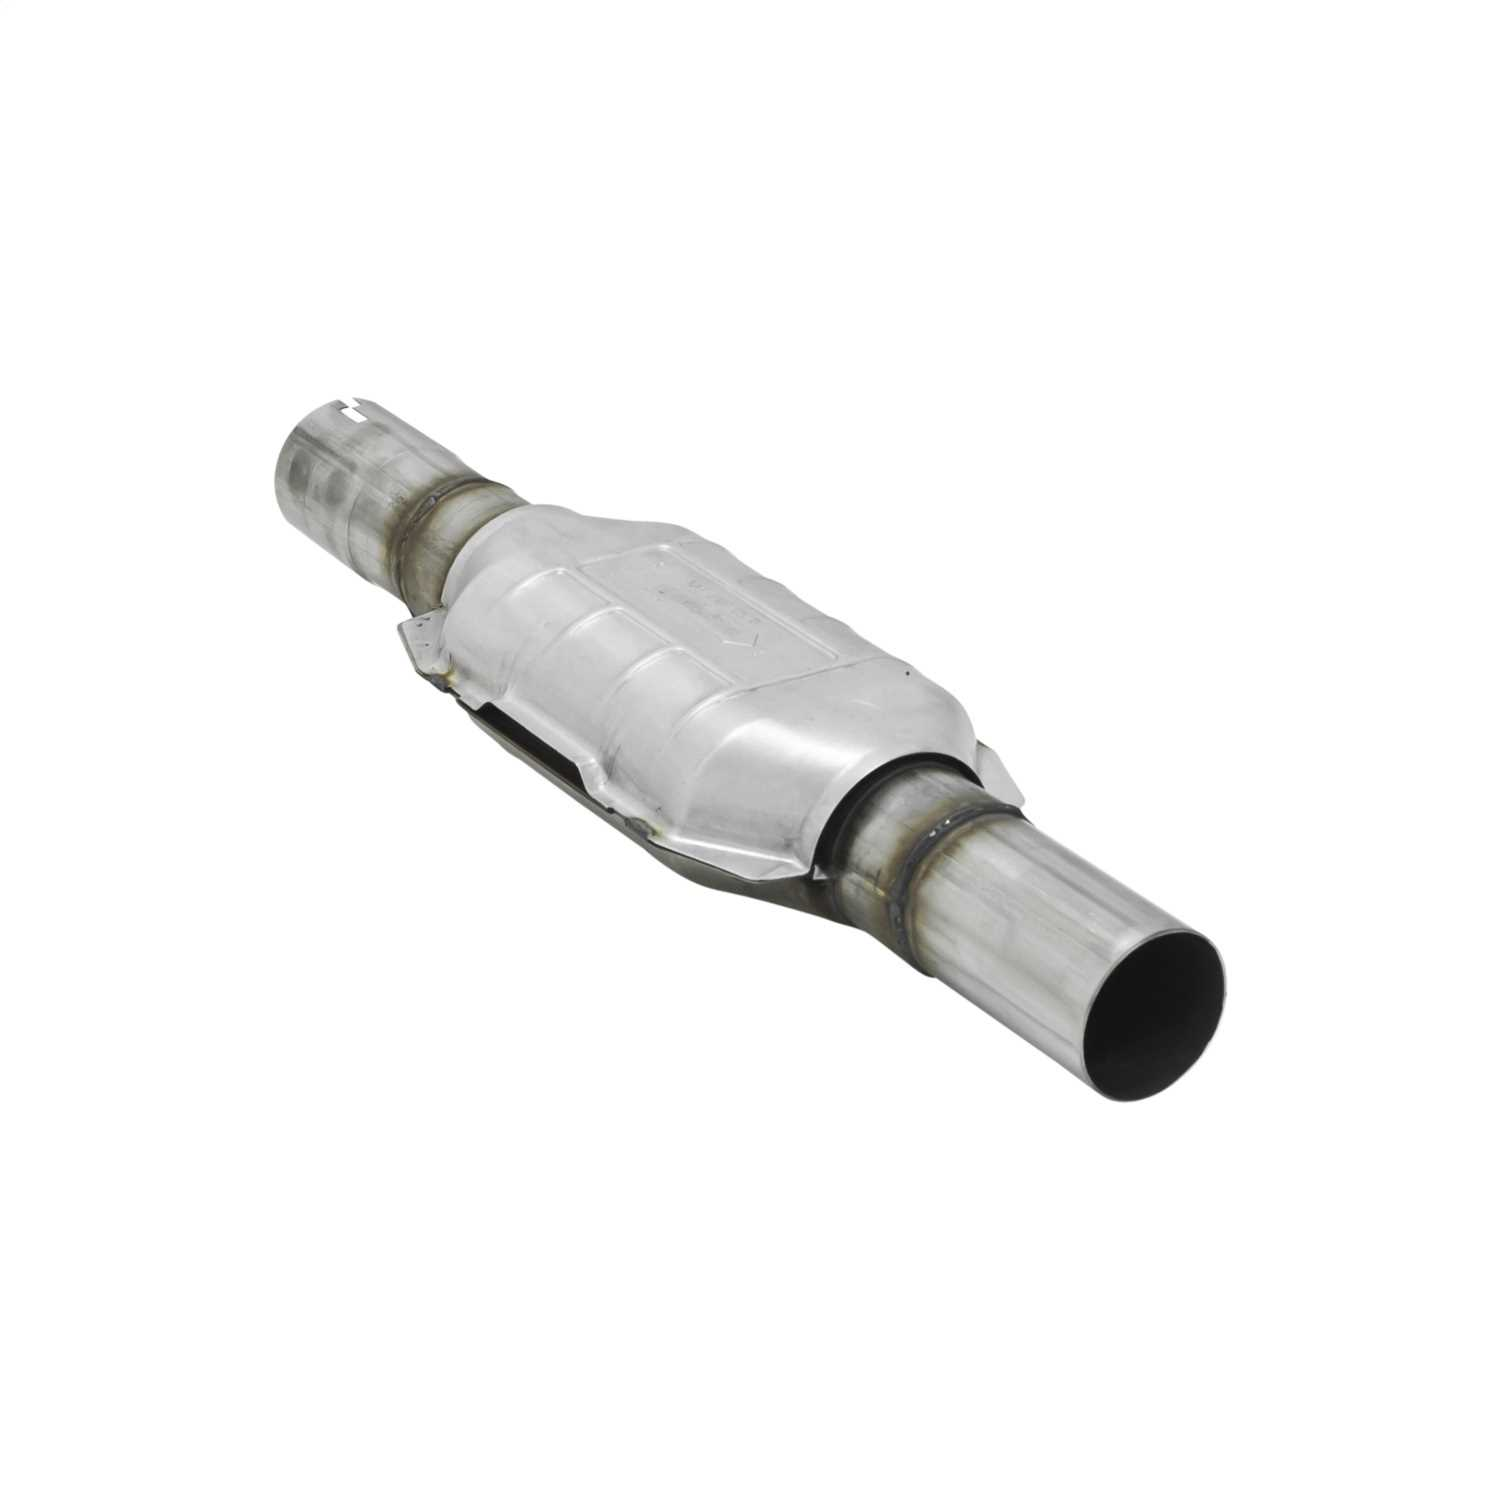 2010025 Flowmaster 49 State Catalytic Converters Direct Fit Catalytic Converter